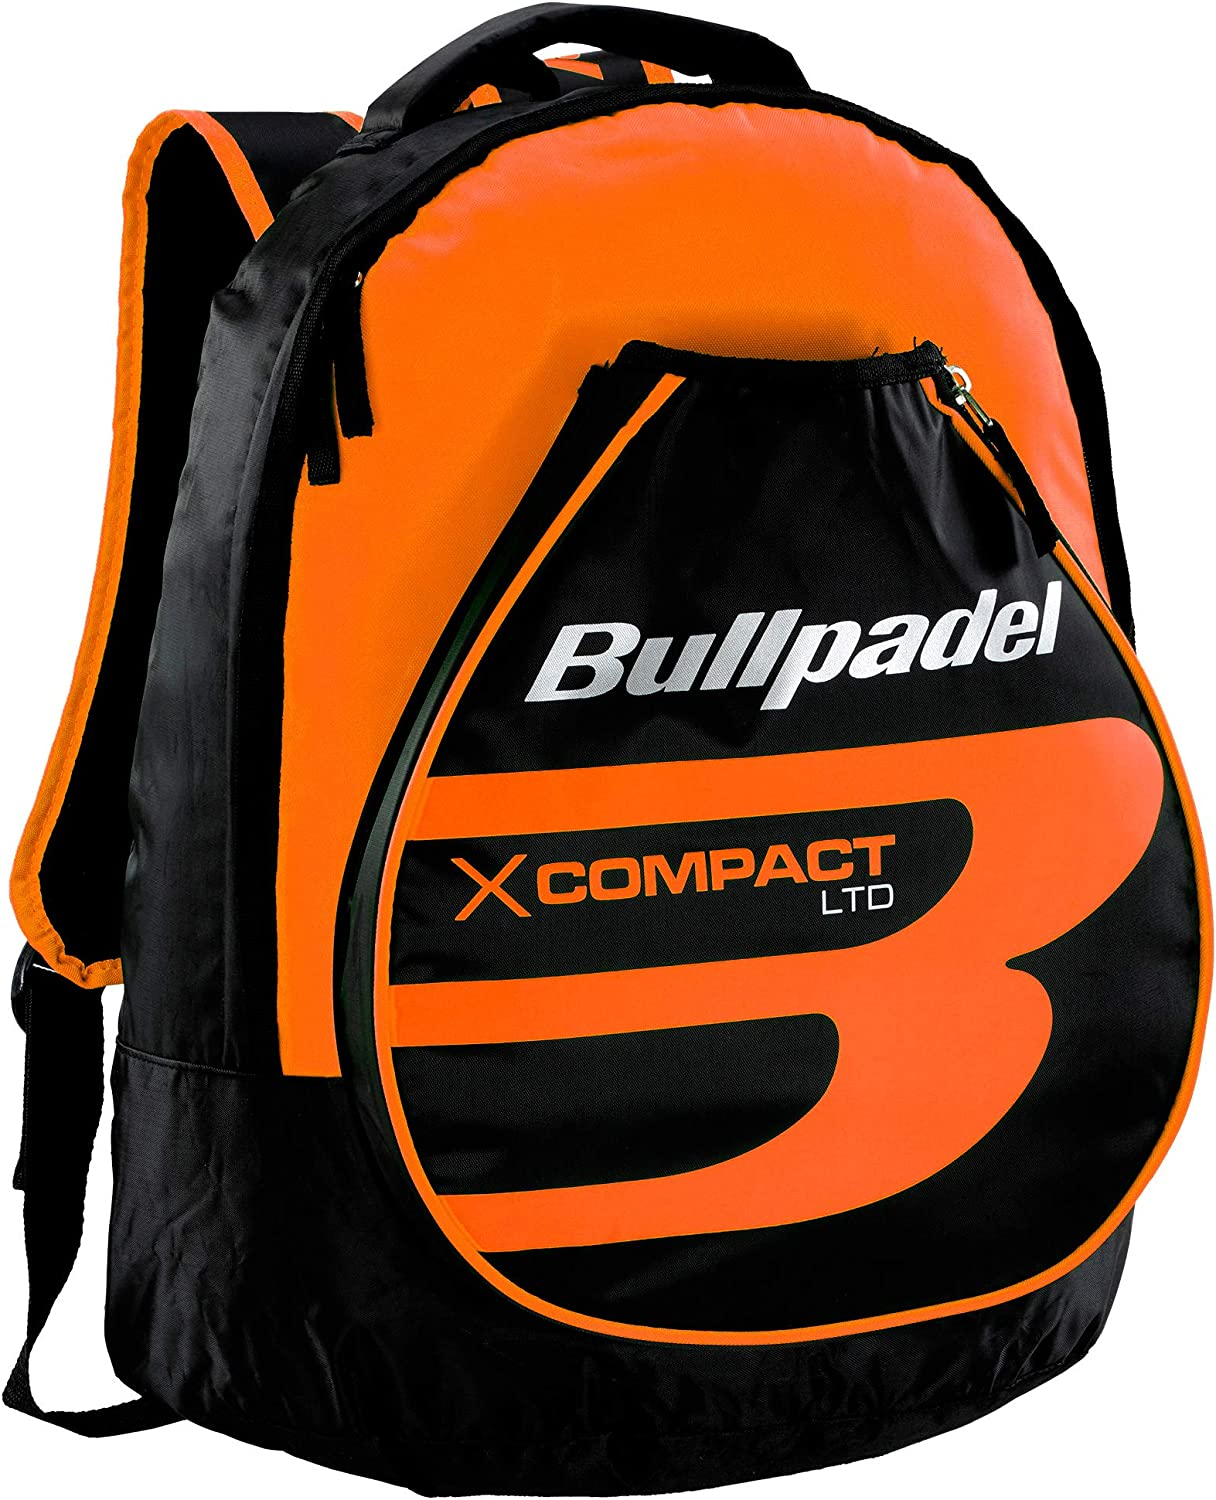 Mochila Bullpadel X-Series Orange: Amazon.es: Deportes y aire libre